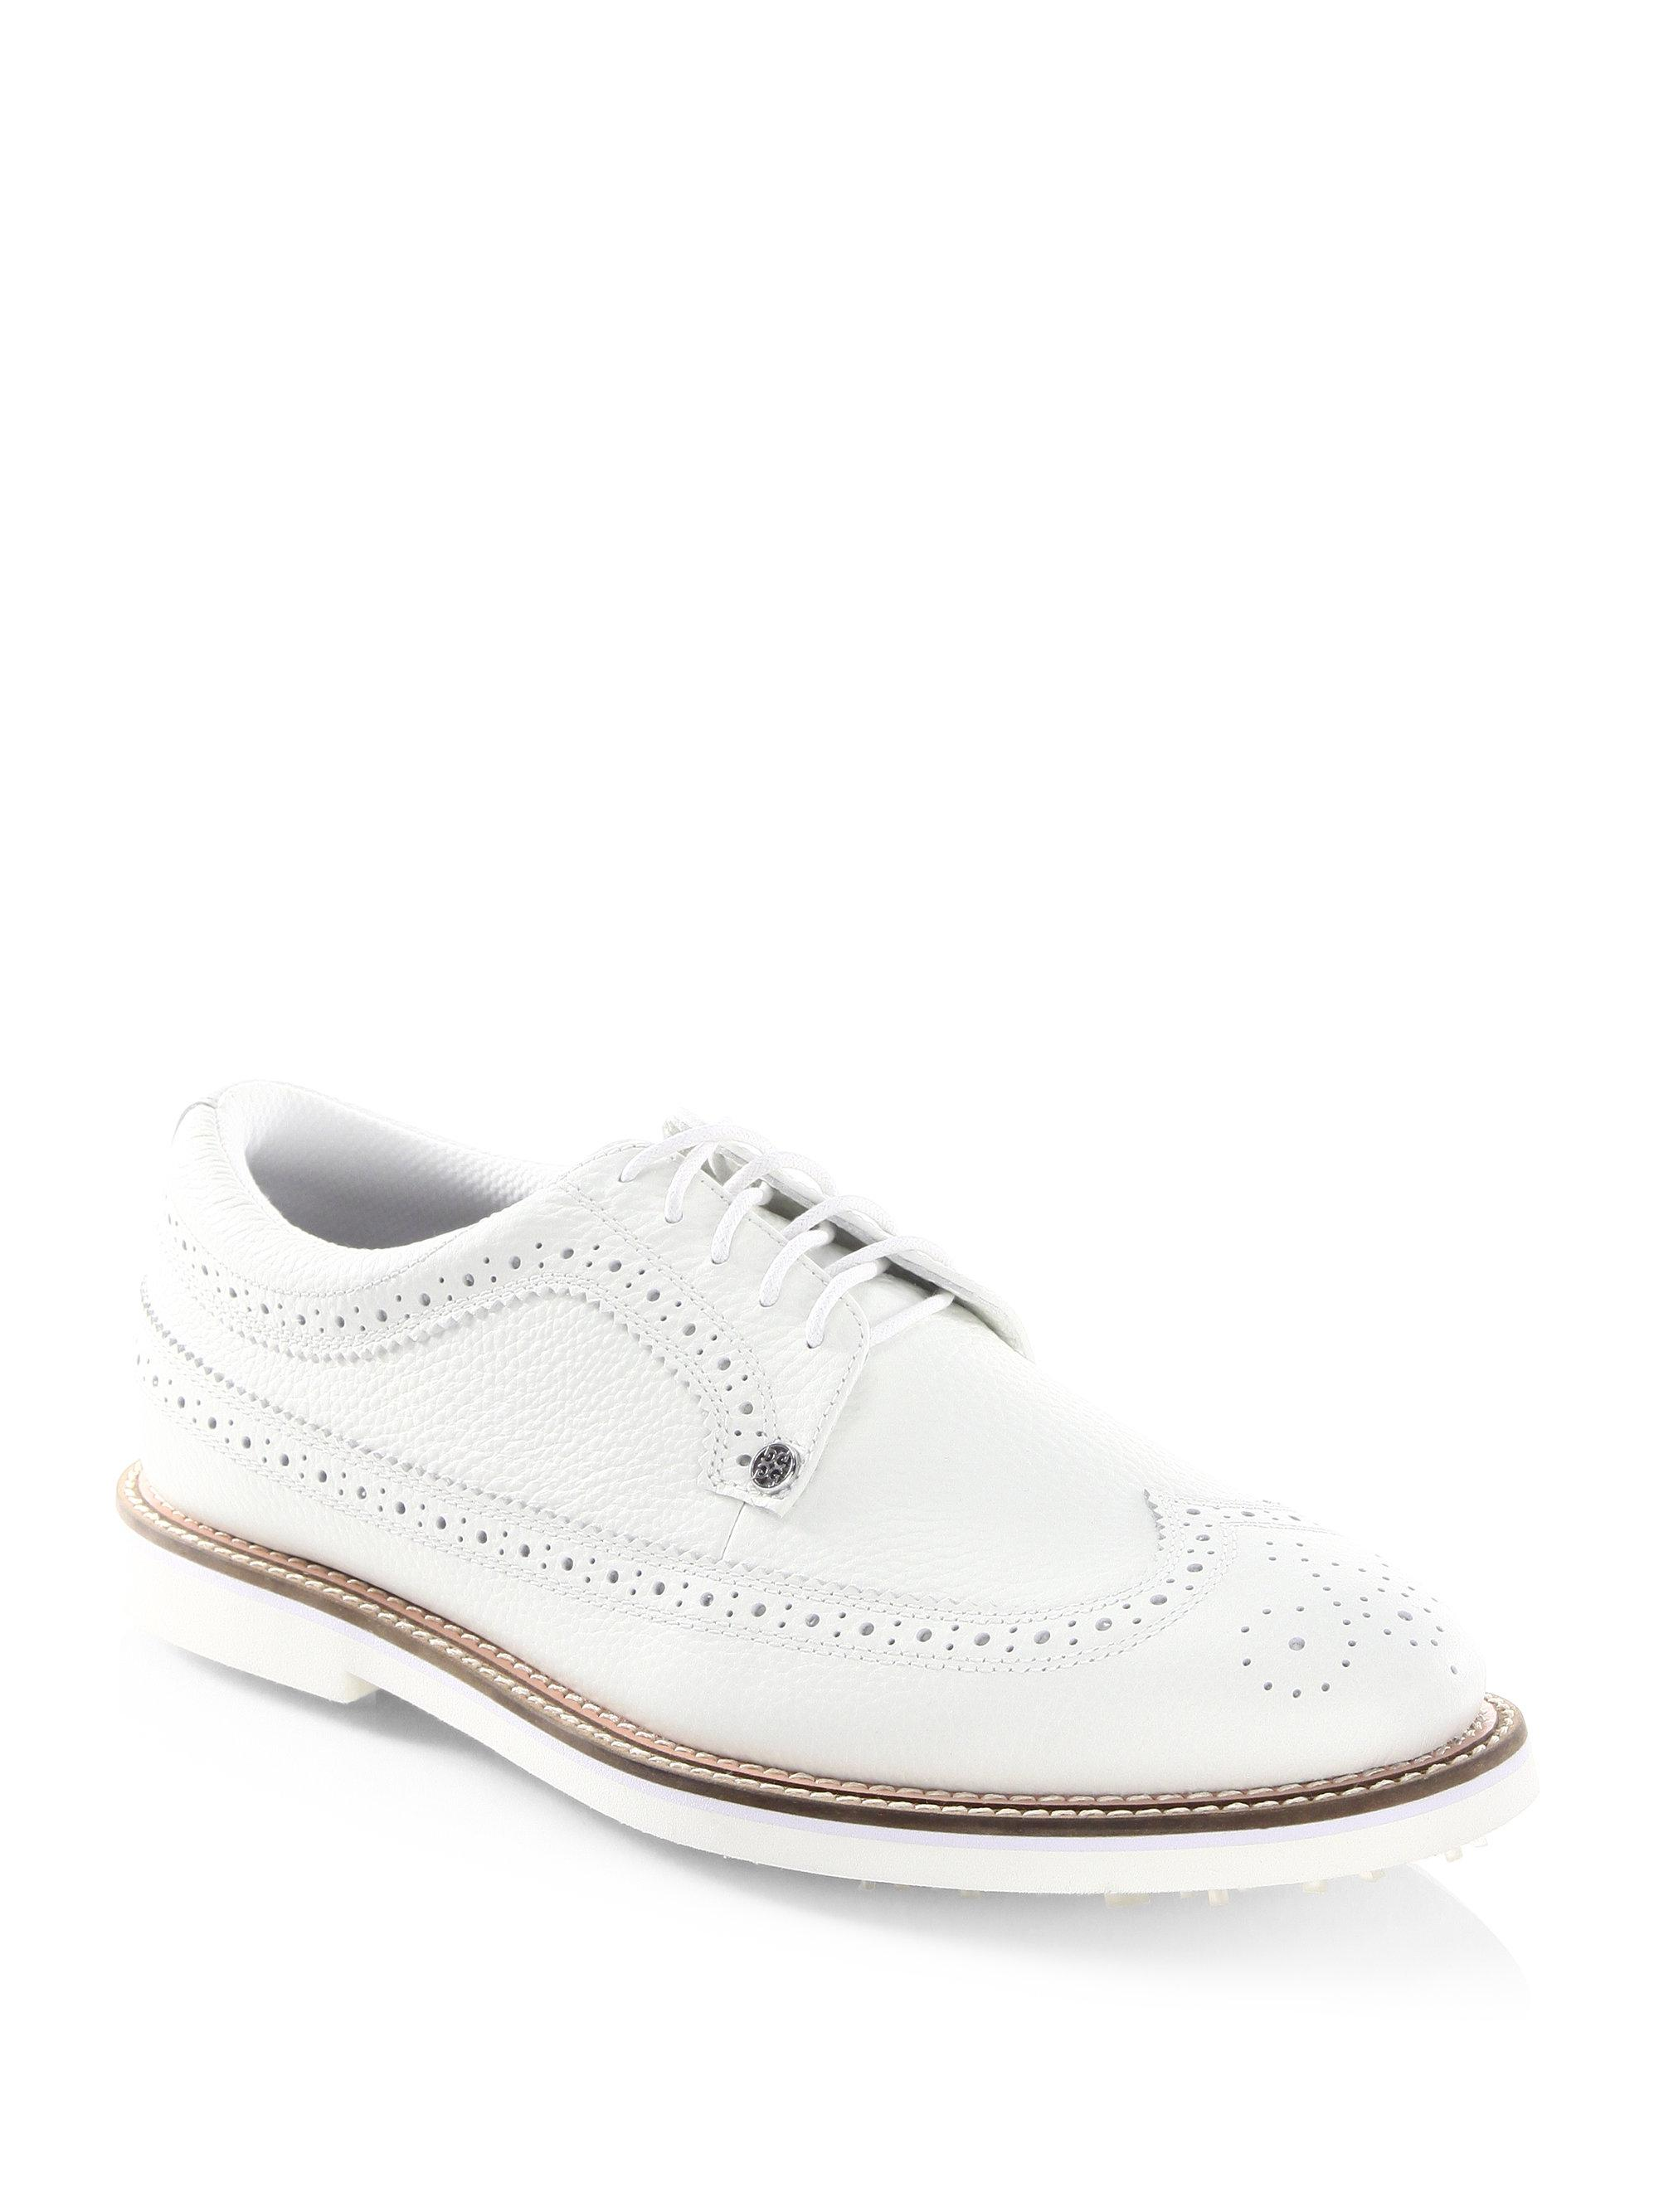 G/FORE Long Wingtip Wingtip Leather Oxford Shoes JKnB39f